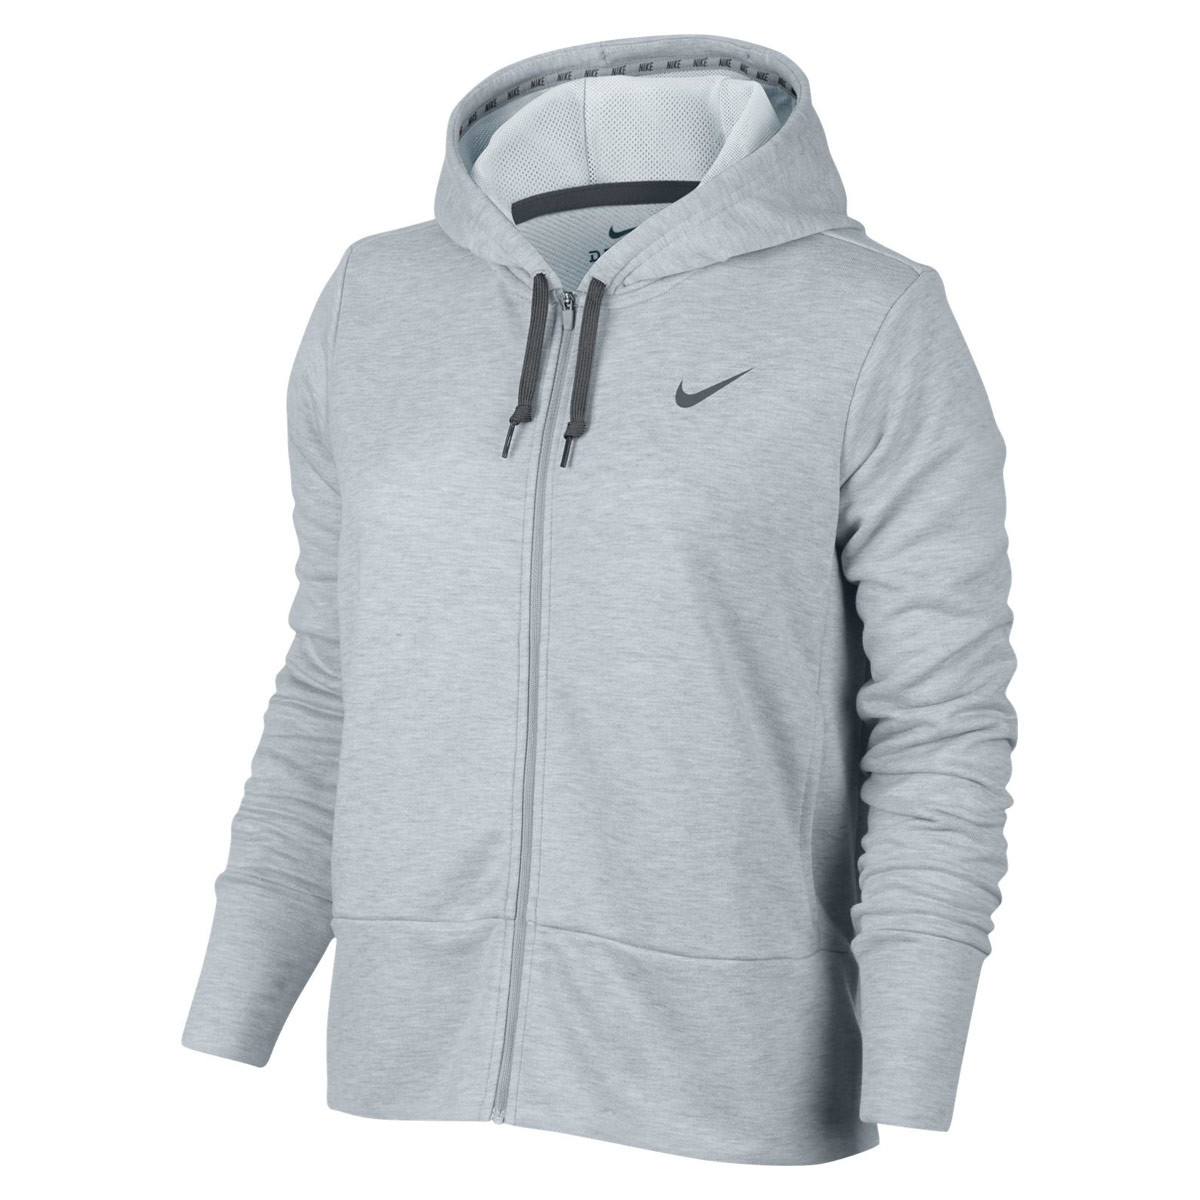 code promo 763fa 33d57 Femme Dry Training Pour Hoodie Sweats Pulls Nike Gris xBordCe